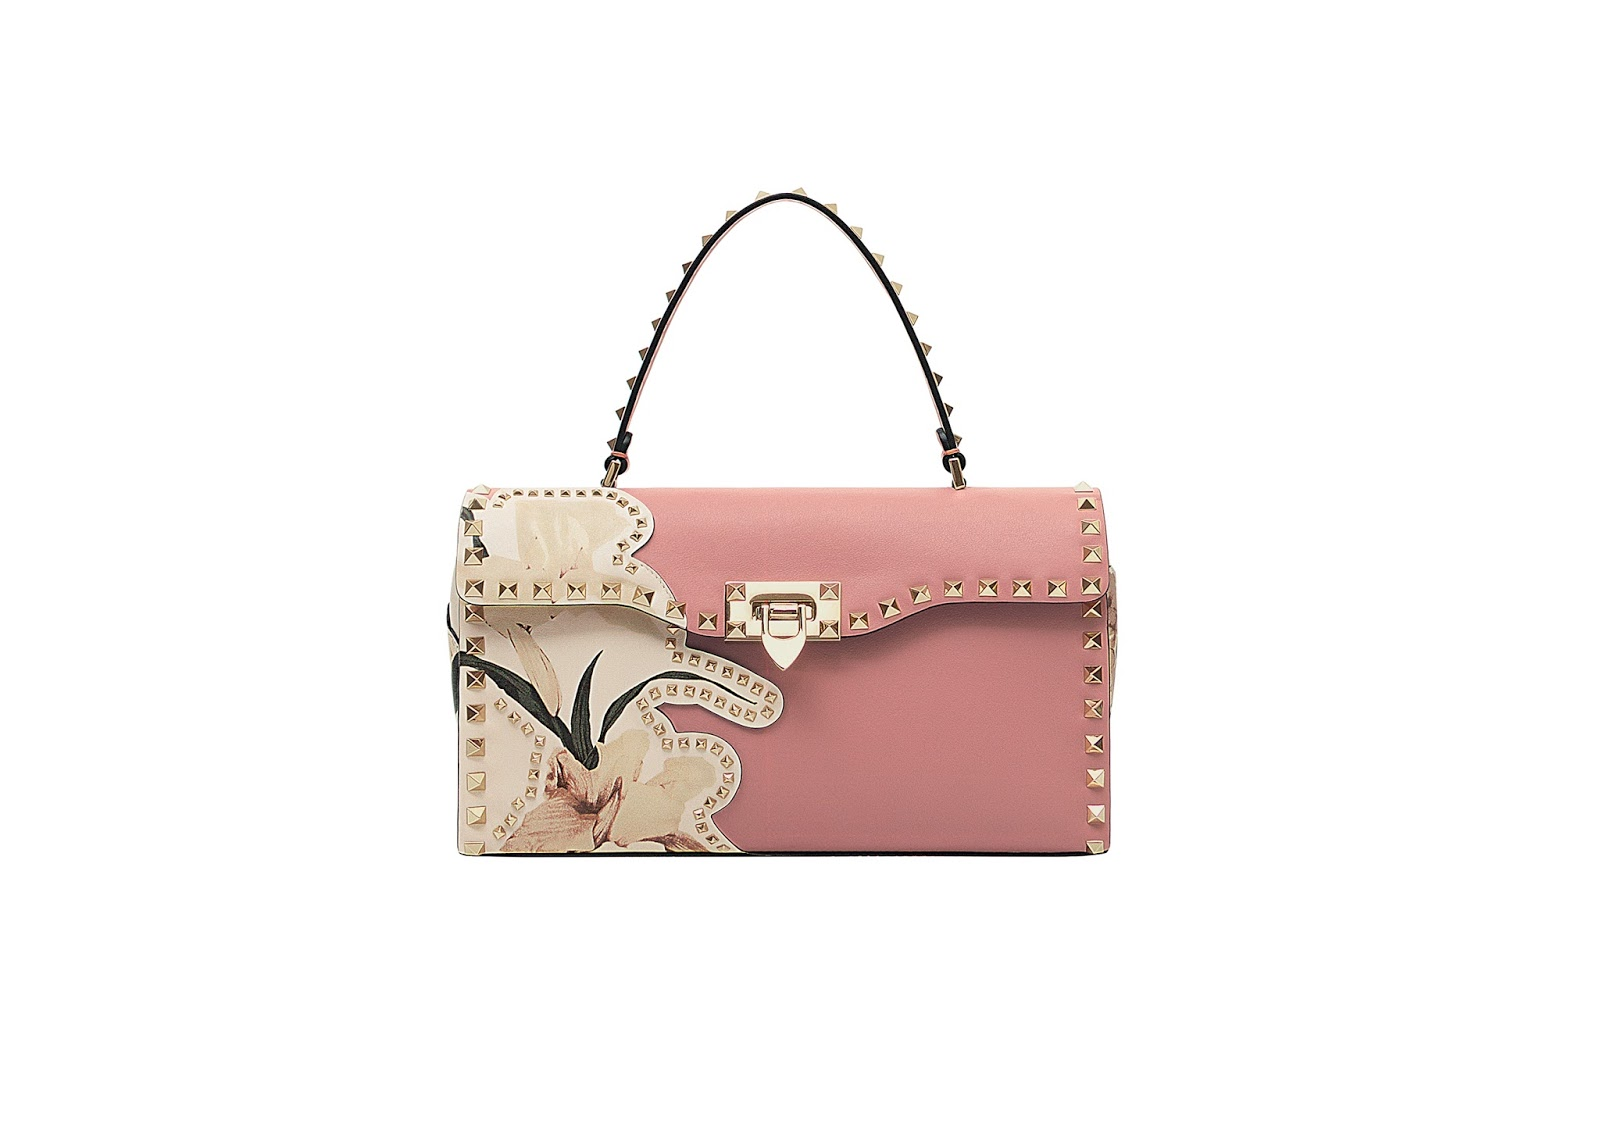 Valentino's Cutout Flower Rockstud Bags